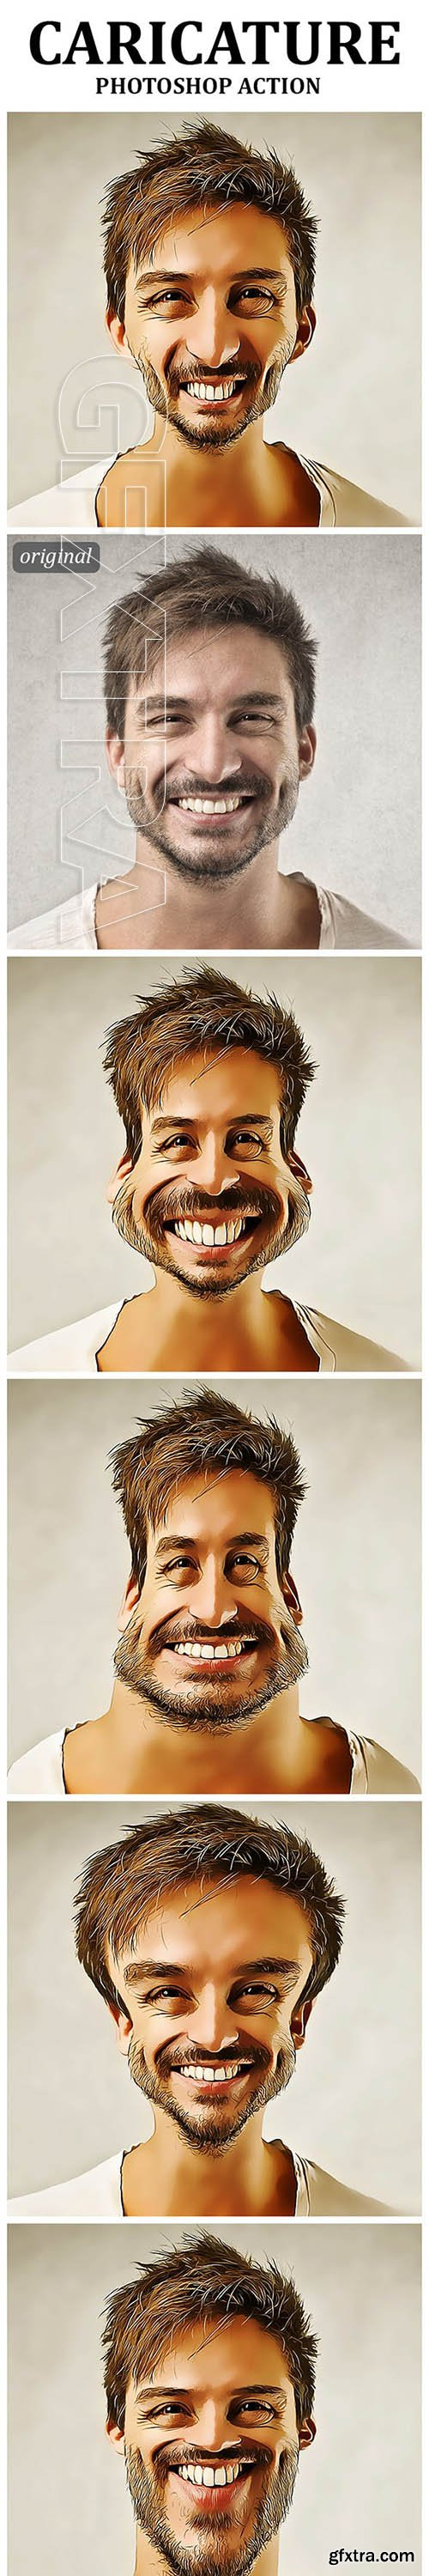 GraphicRiver - Caricature Photoshop Action 22993387